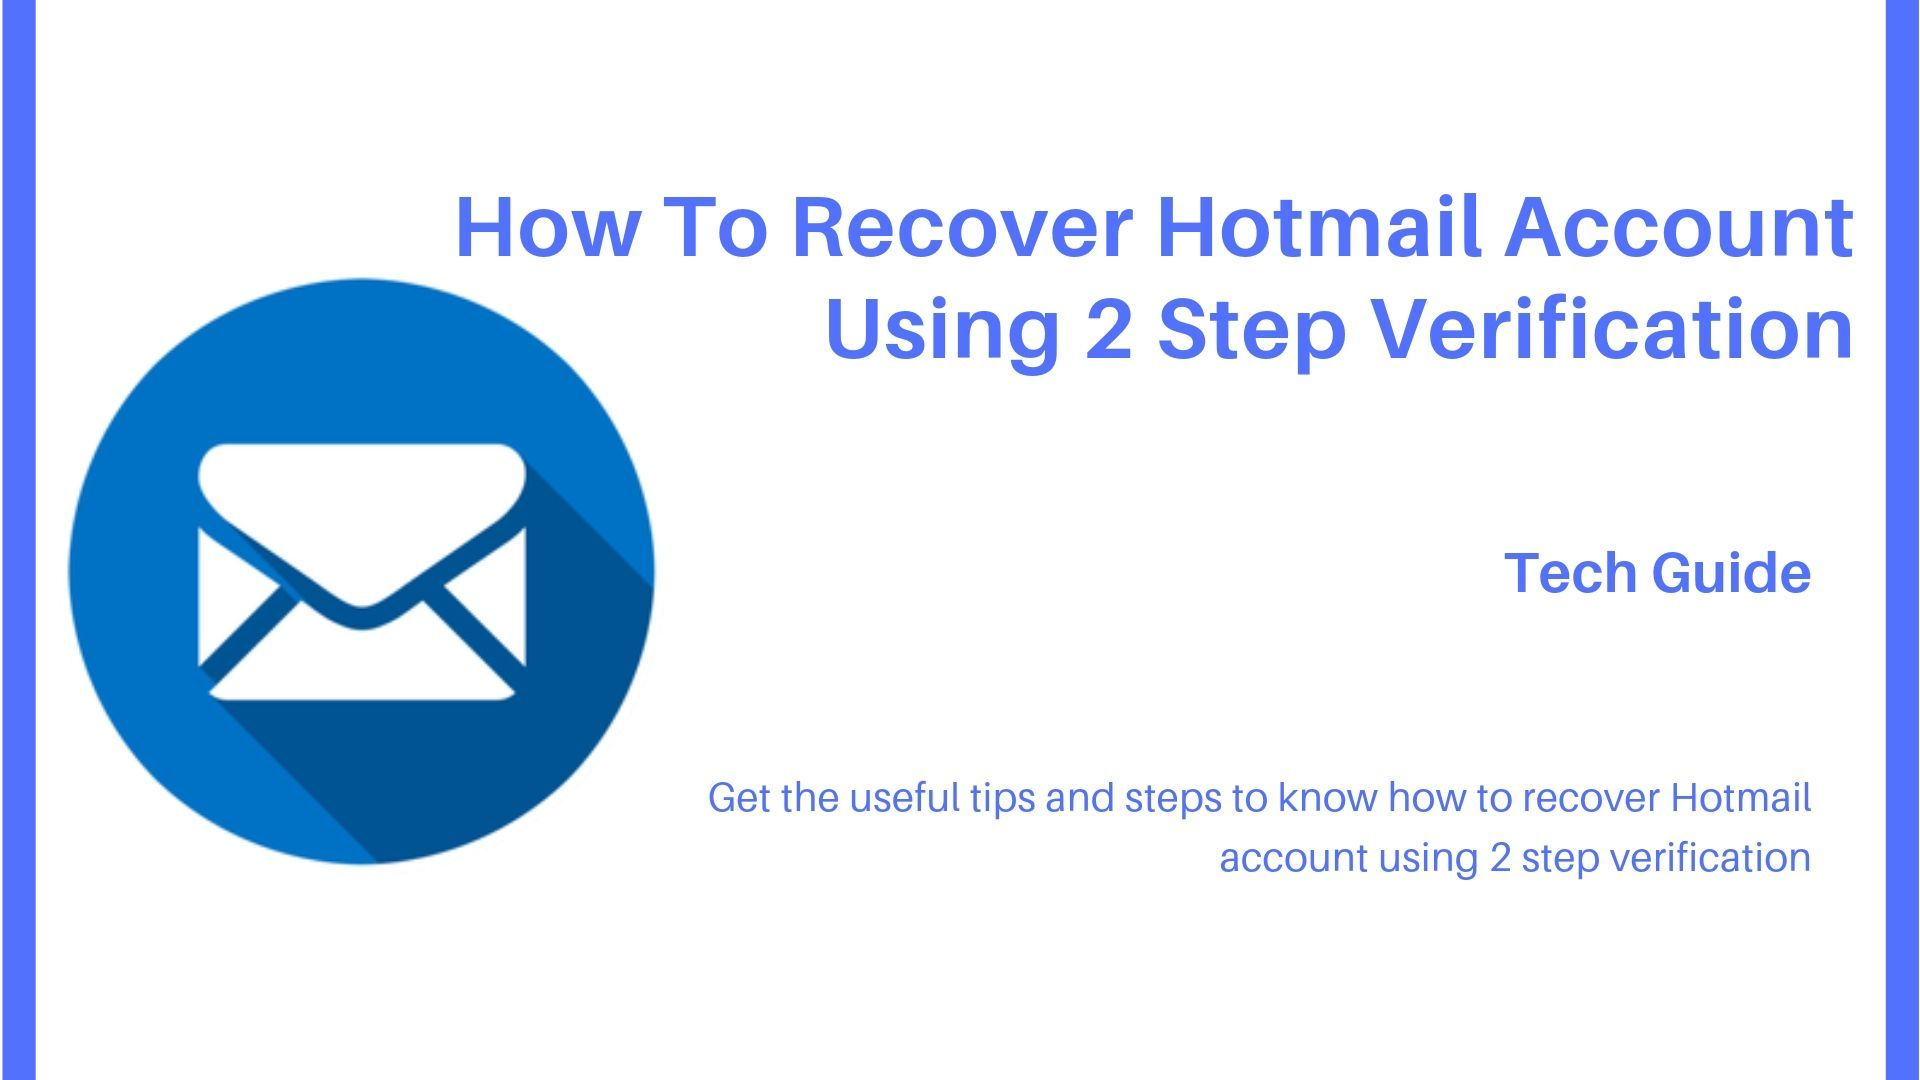 Get The 10 Easy And Helpful Steps To Recover Hotmail Account With Two Step Verification If The Problem Still Persis Accounting Email Password Recovery Recover